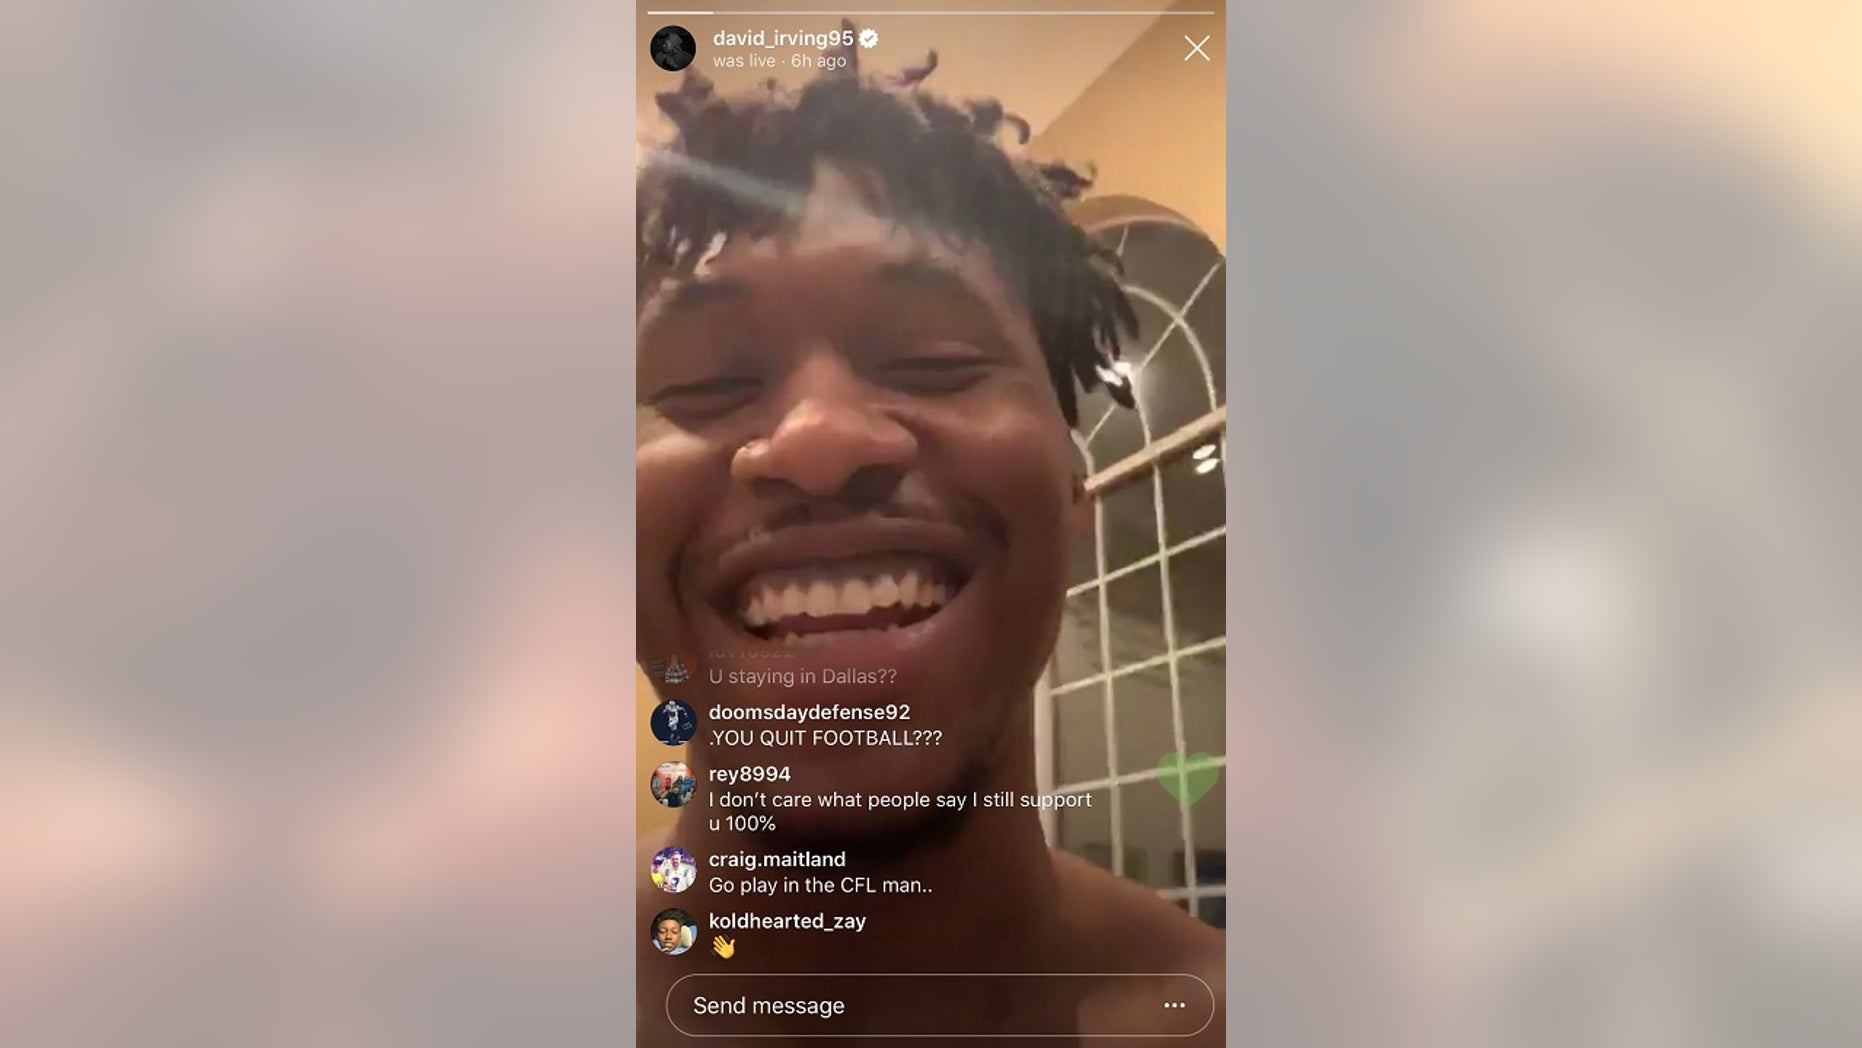 Dallas Cowboys defensive tackle David Irving quit football during a live video stream on Instagram.